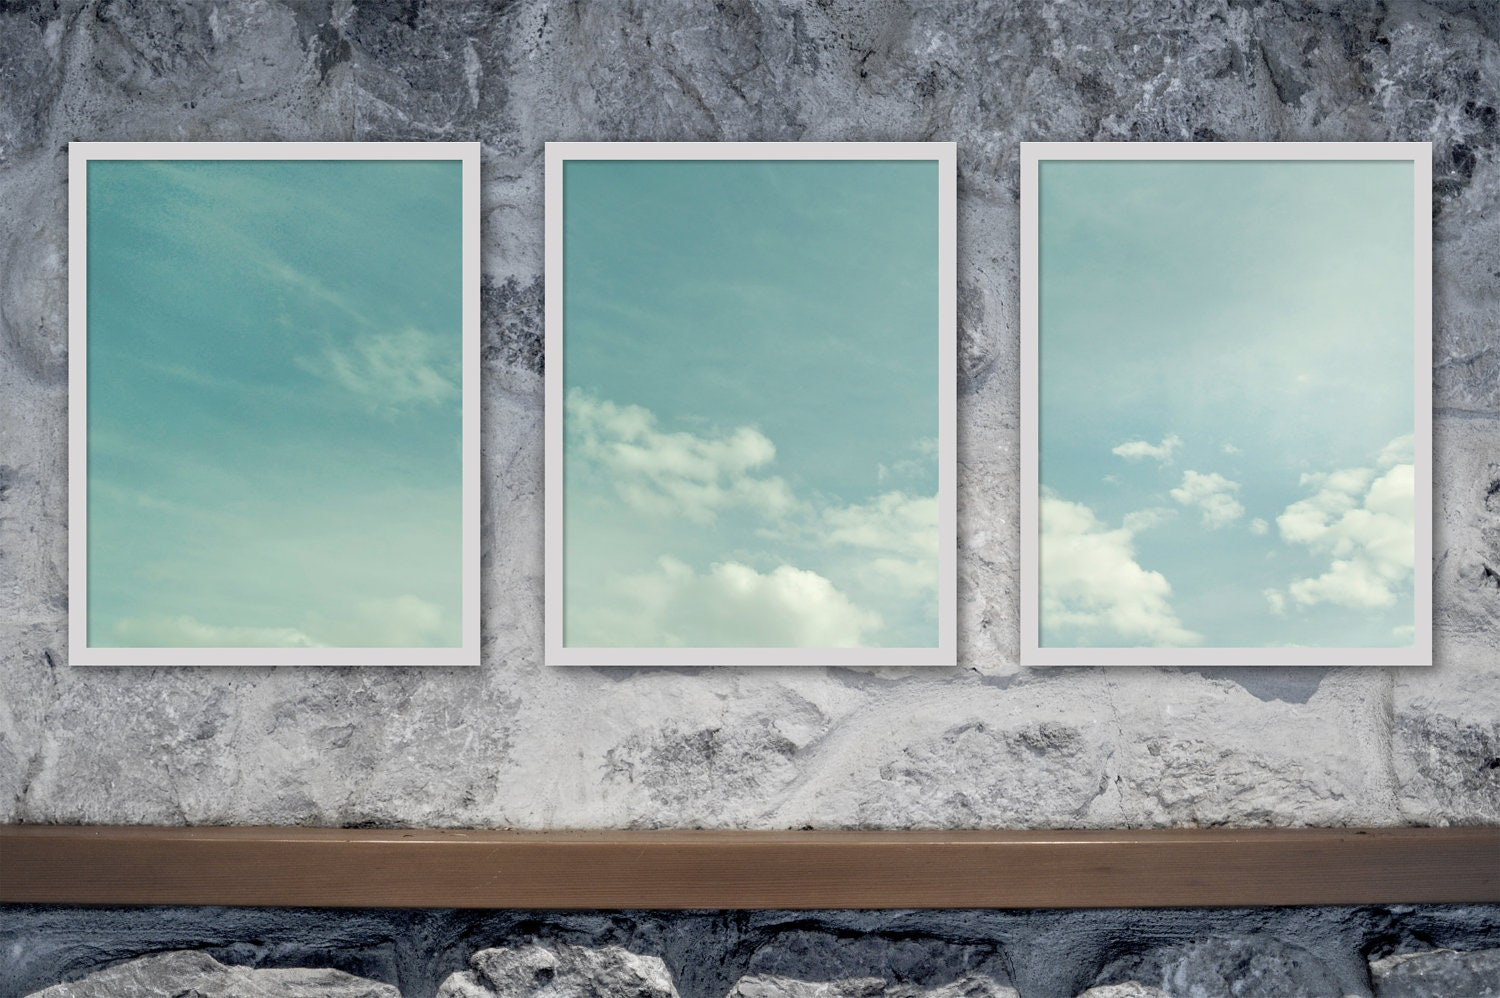 "Cloud Photography - Sky Photography Gift Idea blue teal turquoise sky clouds wall art - 11x14 Photography ""Head in the Sky"" Triptych - andpersandstudio"